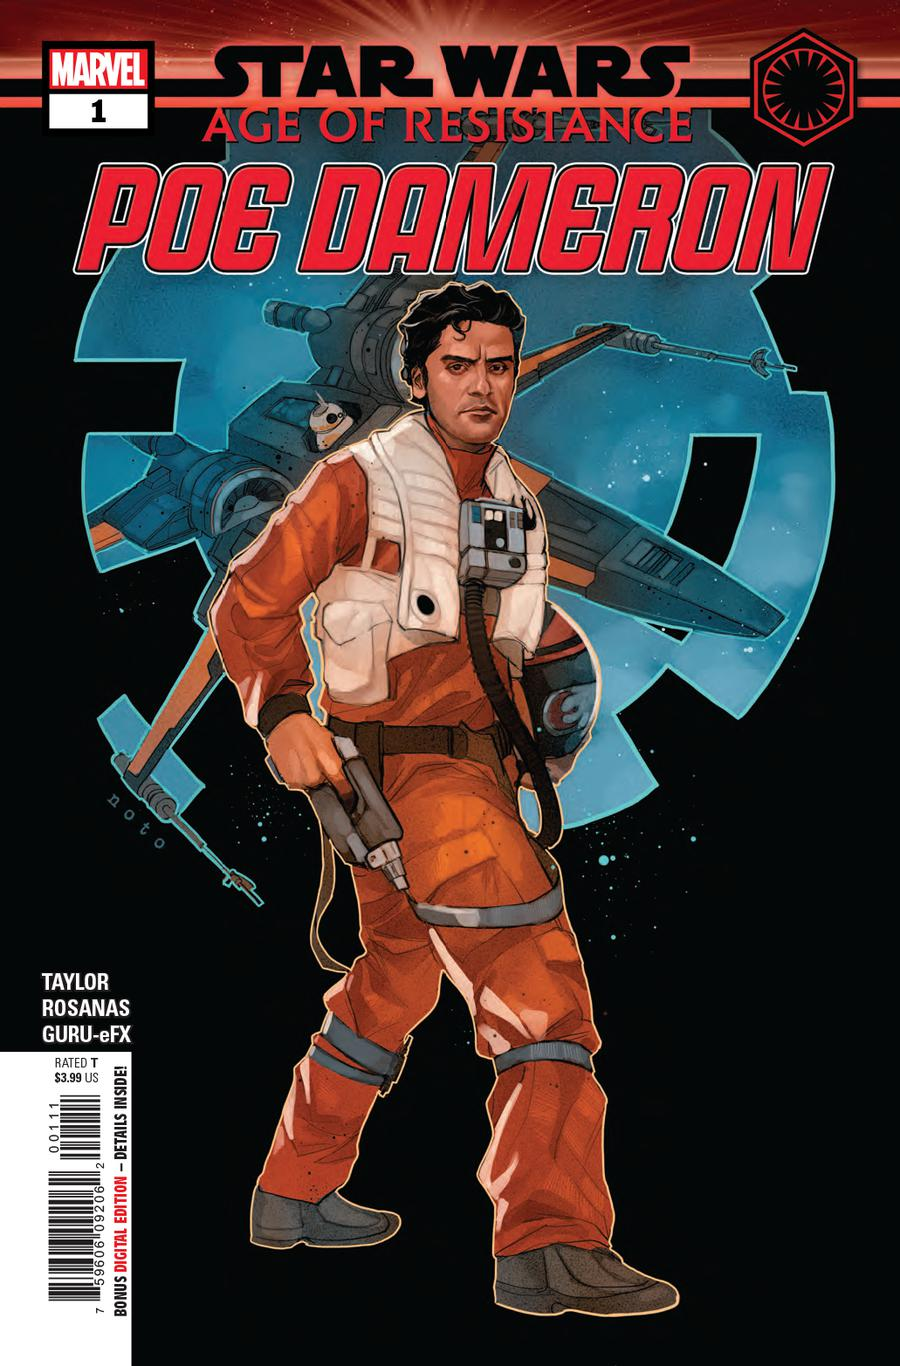 Star Wars Age Of Resistance Poe Dameron #1 Cover A Regular Phil Noto Cover